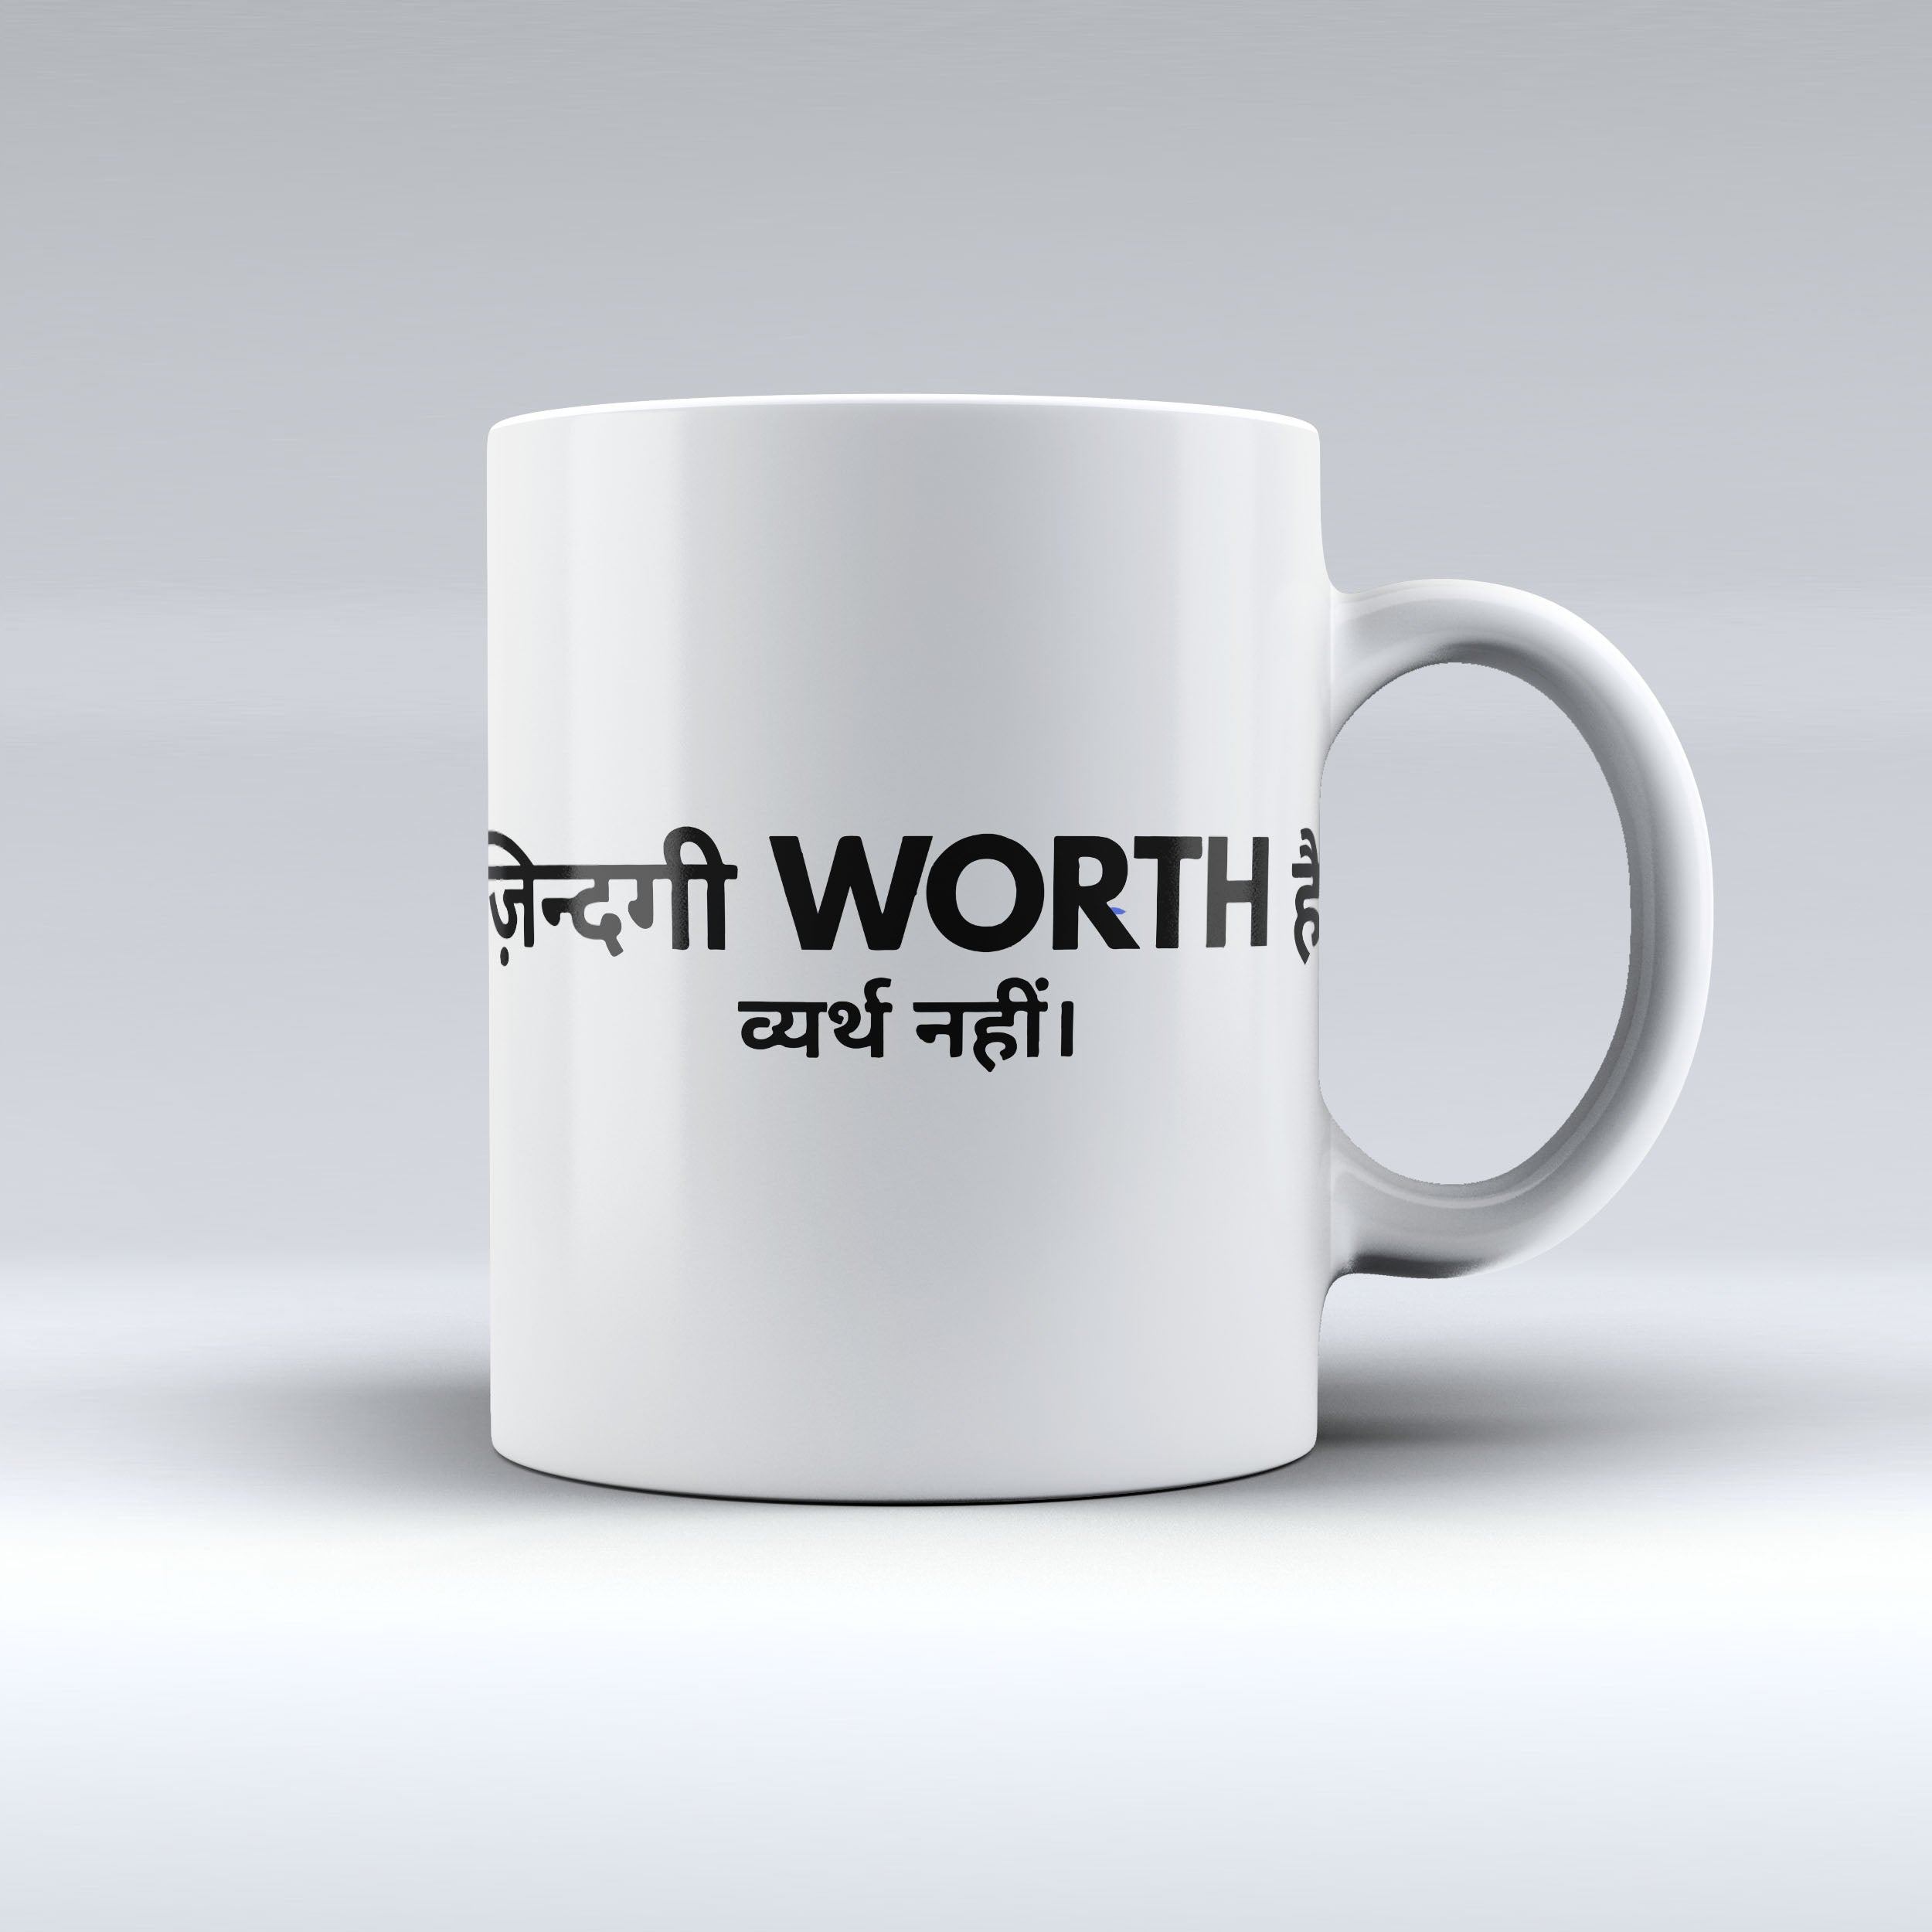 Zindagi Worth Hai Coffee Mug